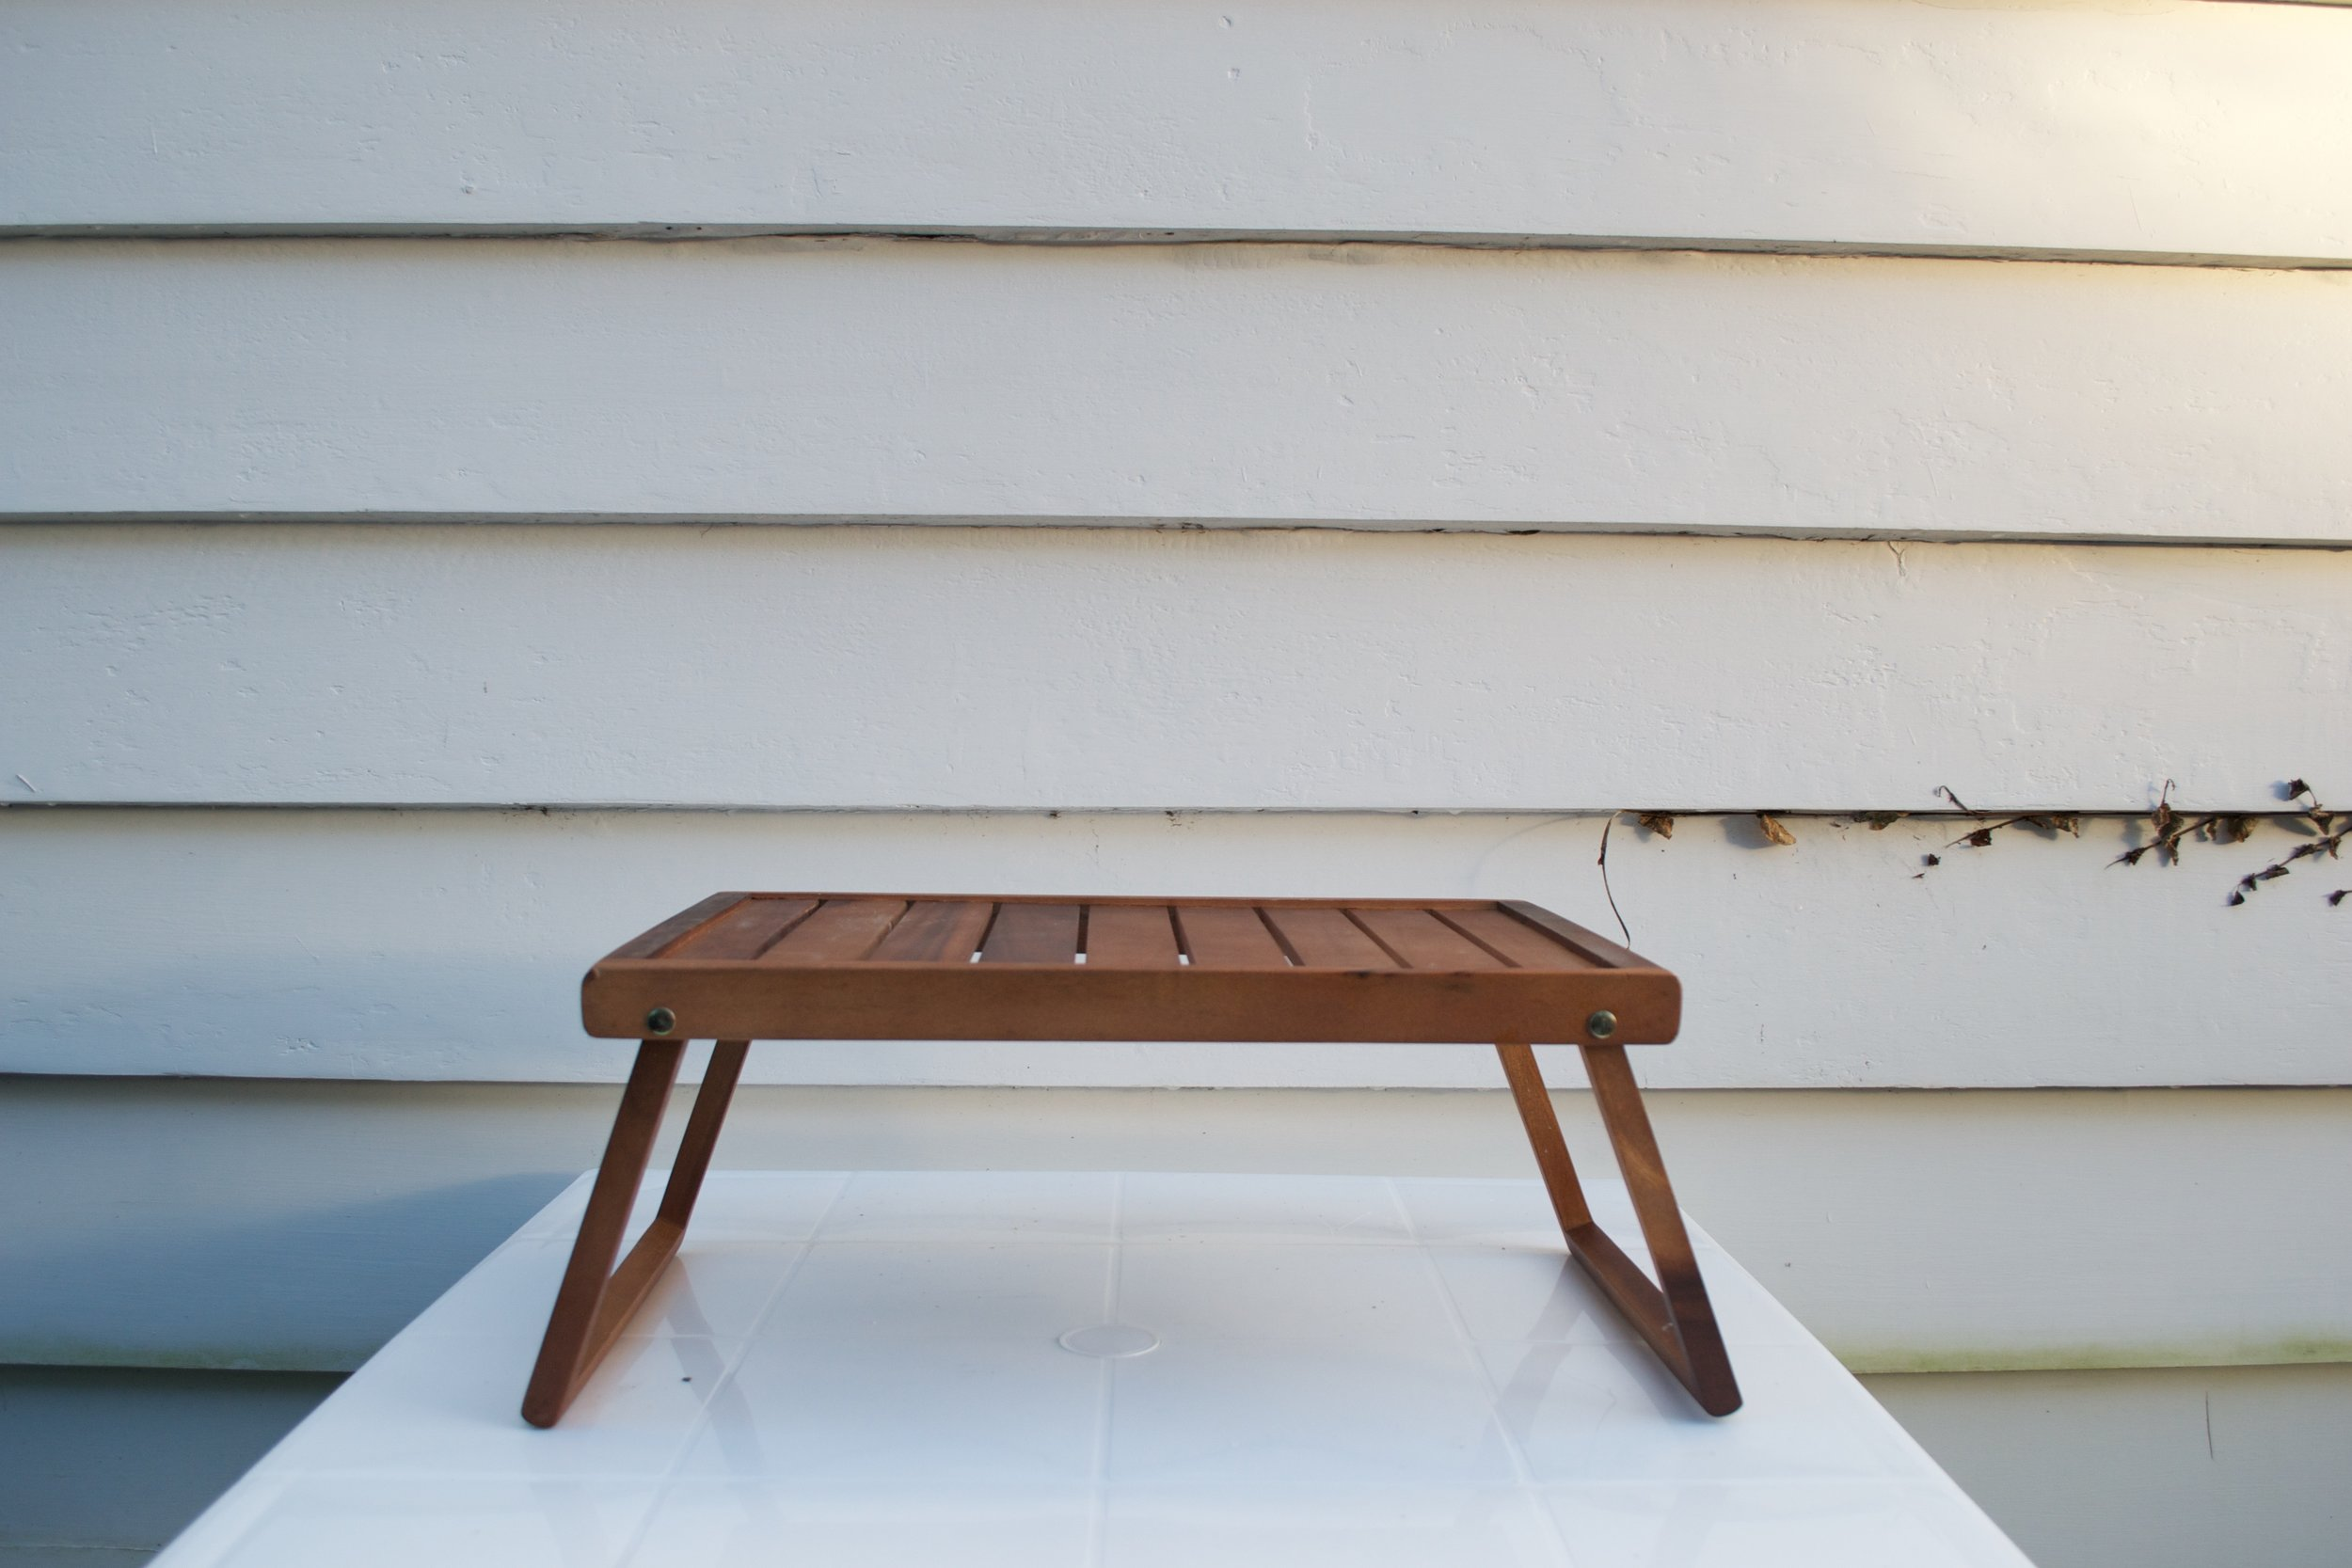 wooden stand x1 $15